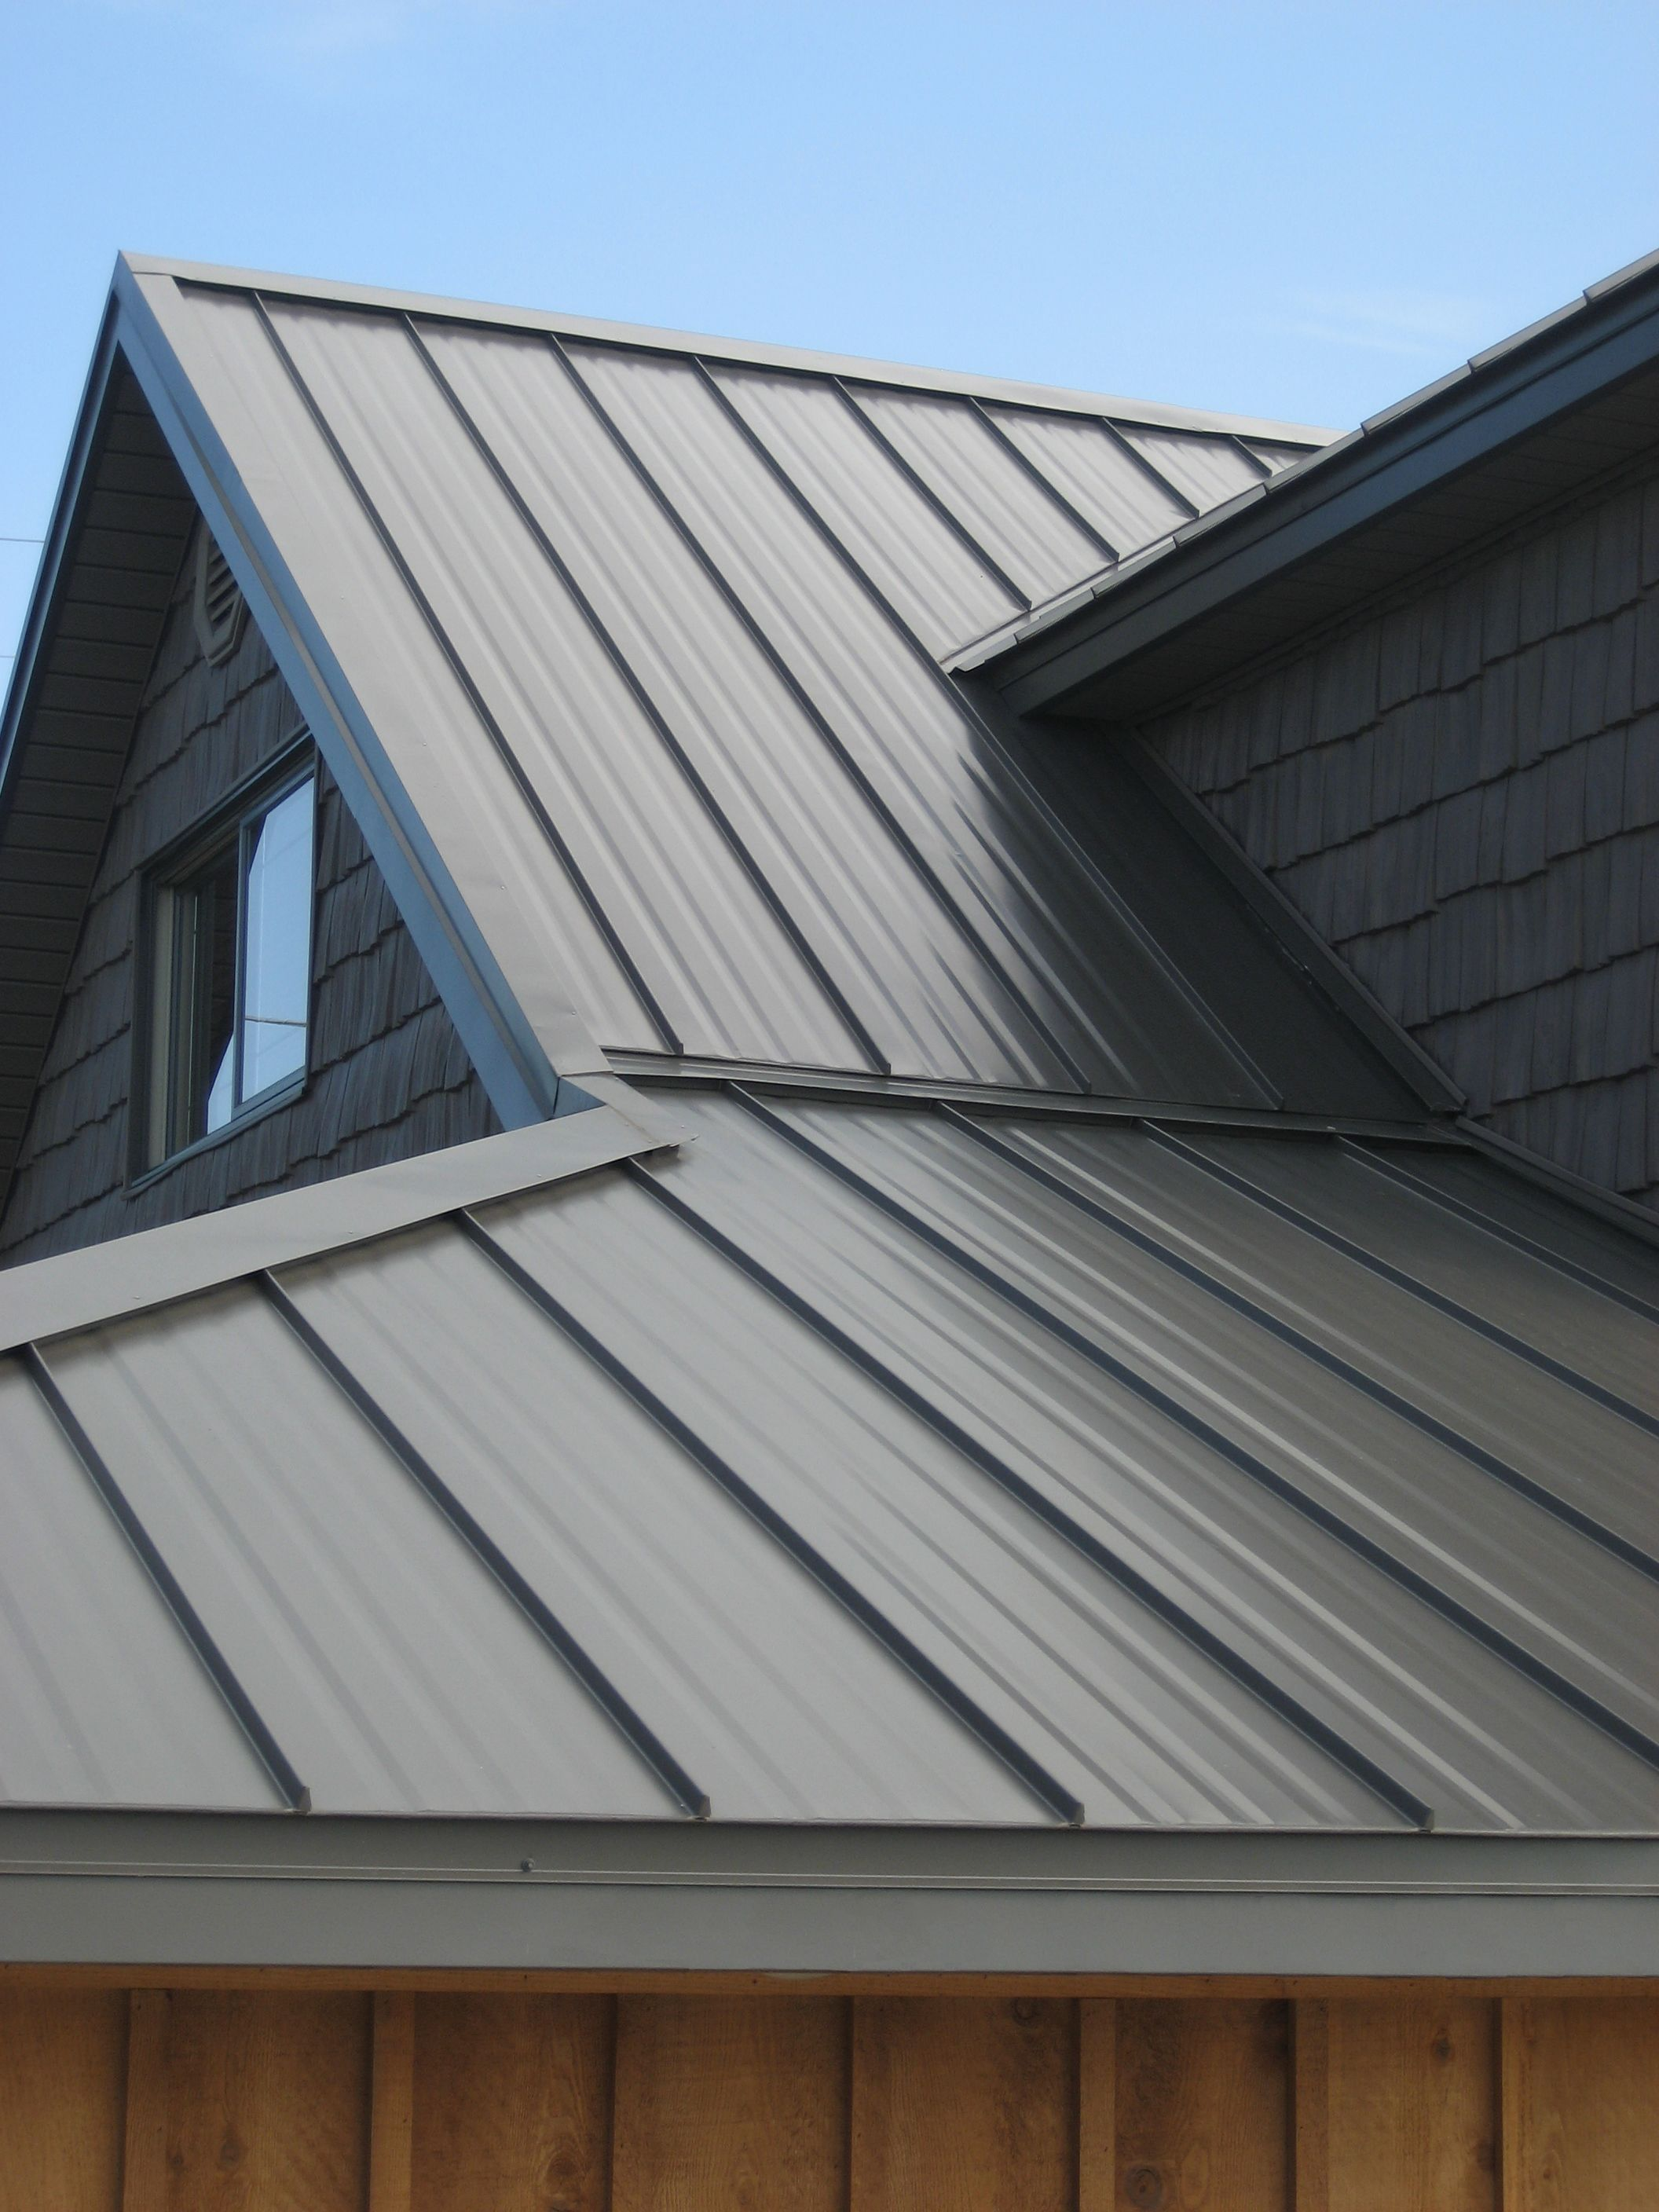 Metal Roofing Can Be Used For Domestic Or Commercial